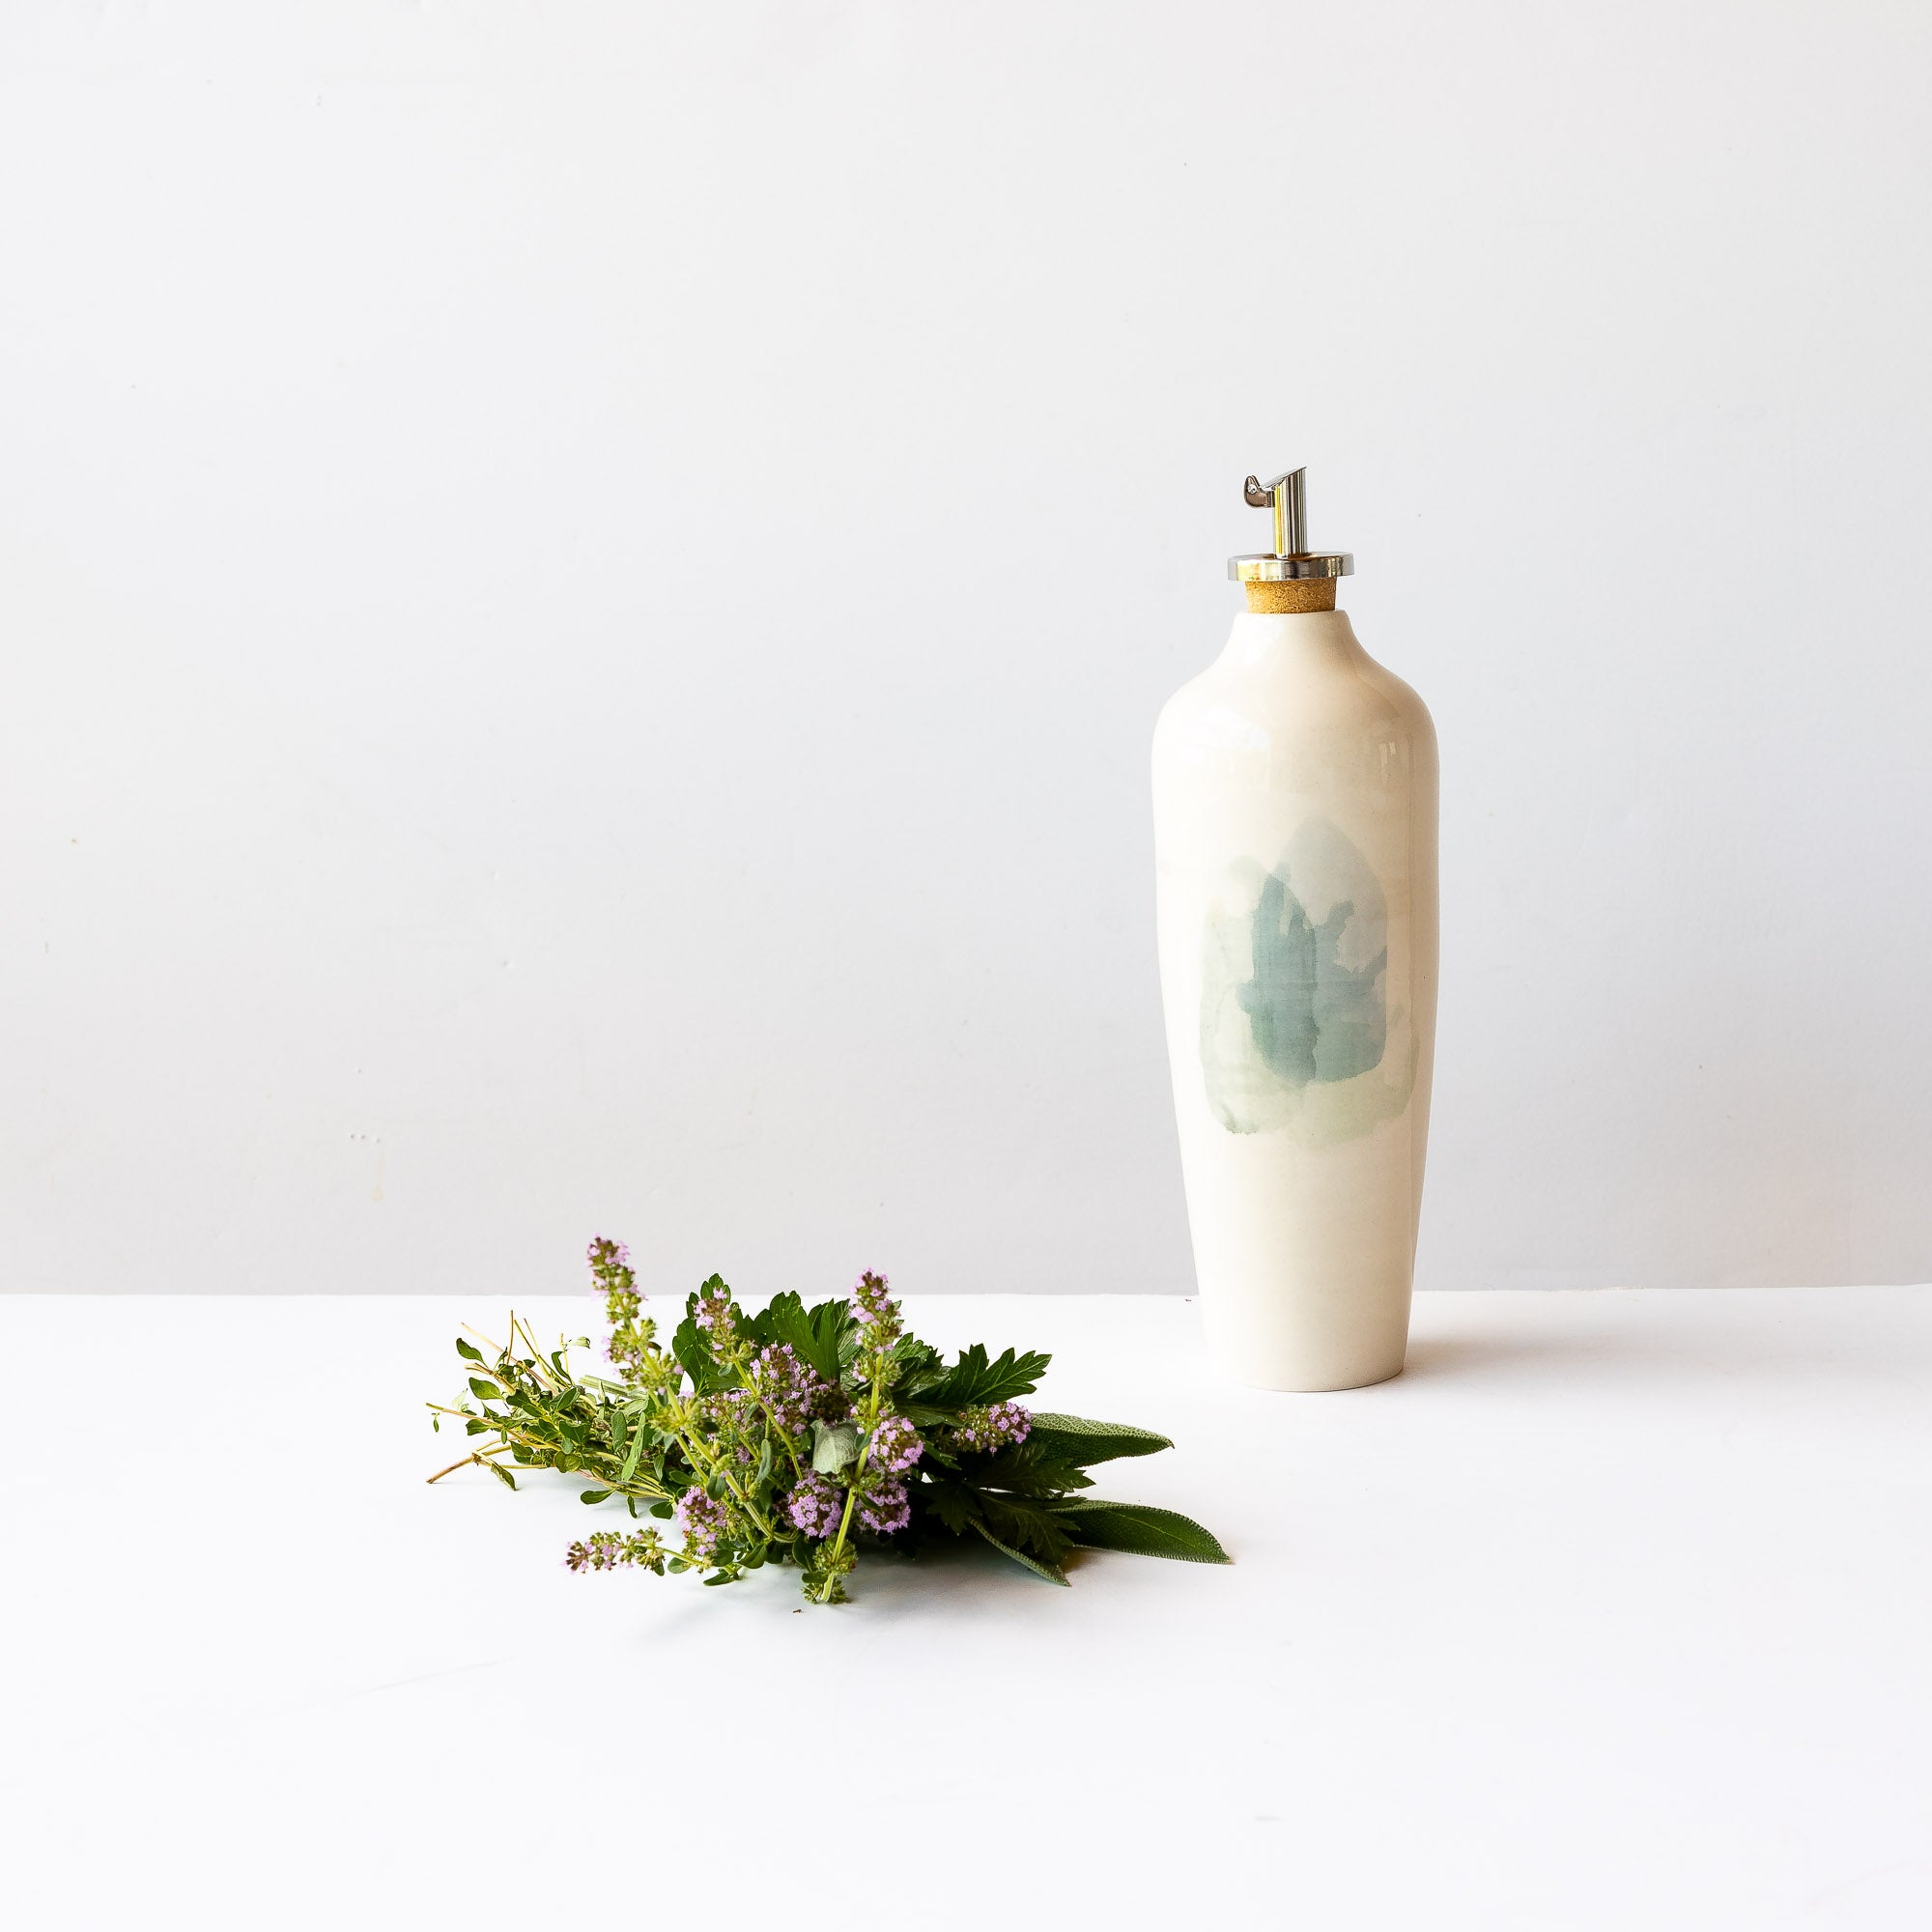 Handmade Porcelain Oil Dispenser - Sold by Chic & Basta